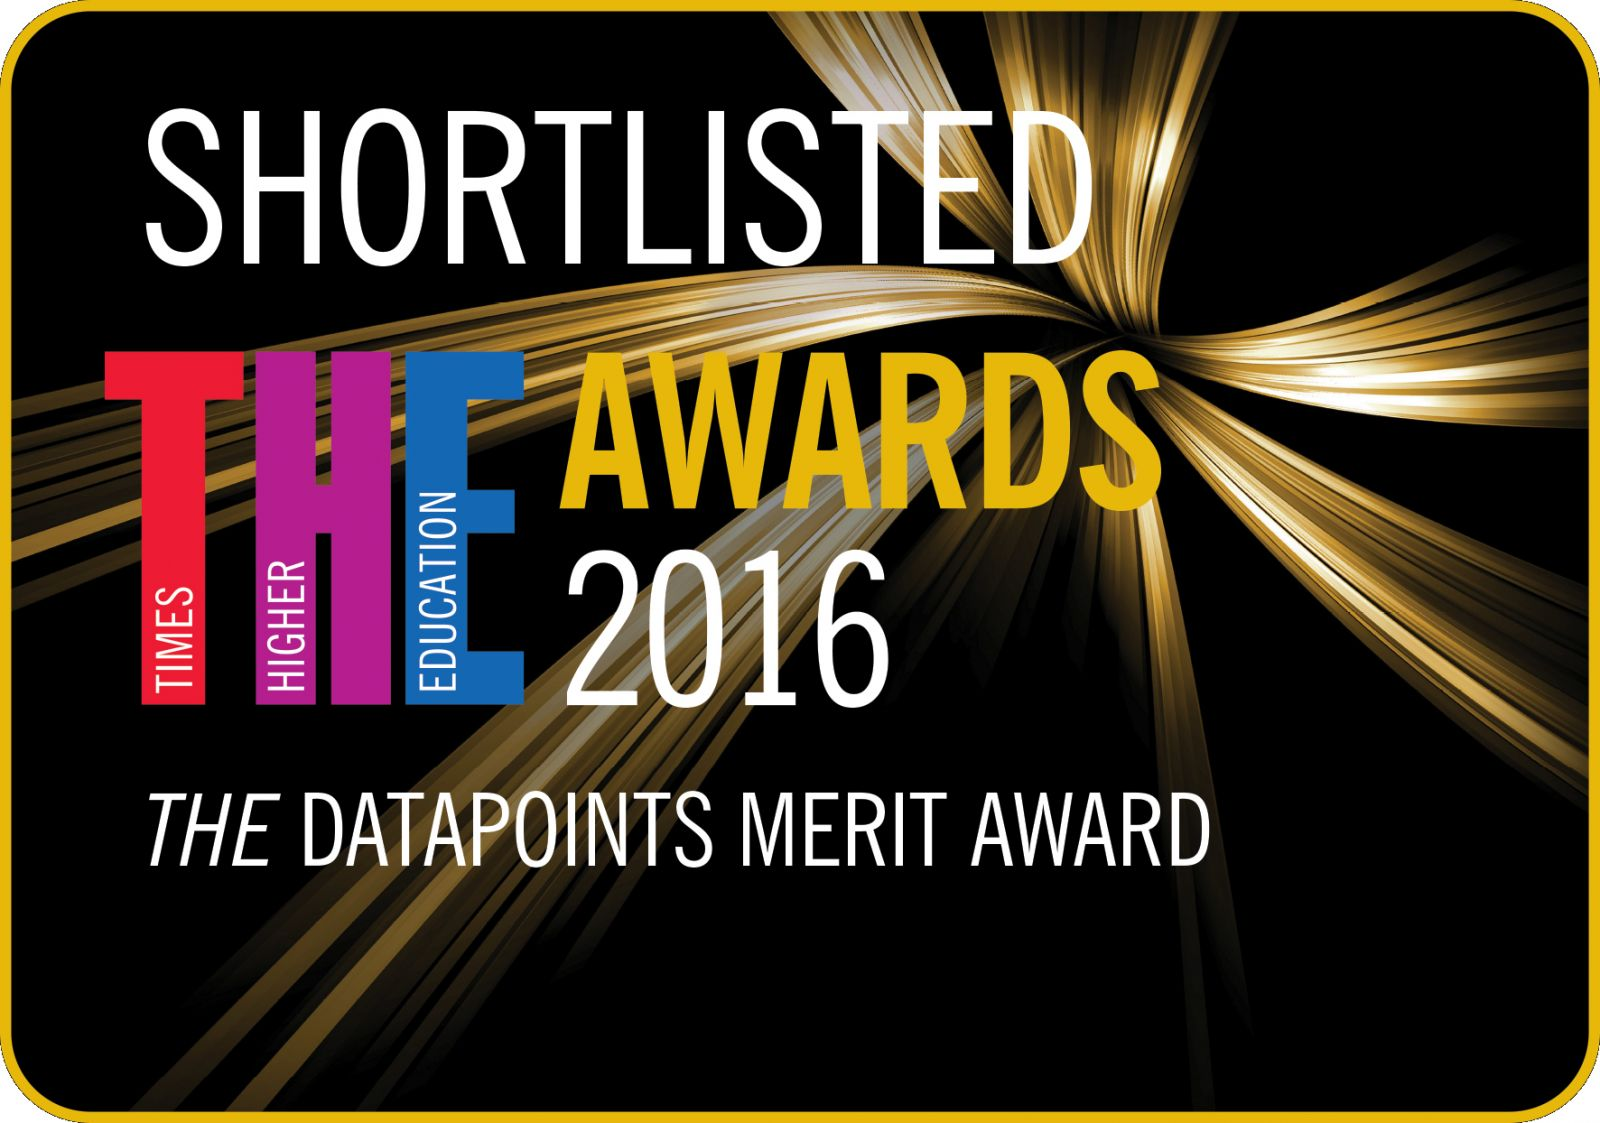 THE-Awards-2016-THE-DataPoints-Merit-Award-